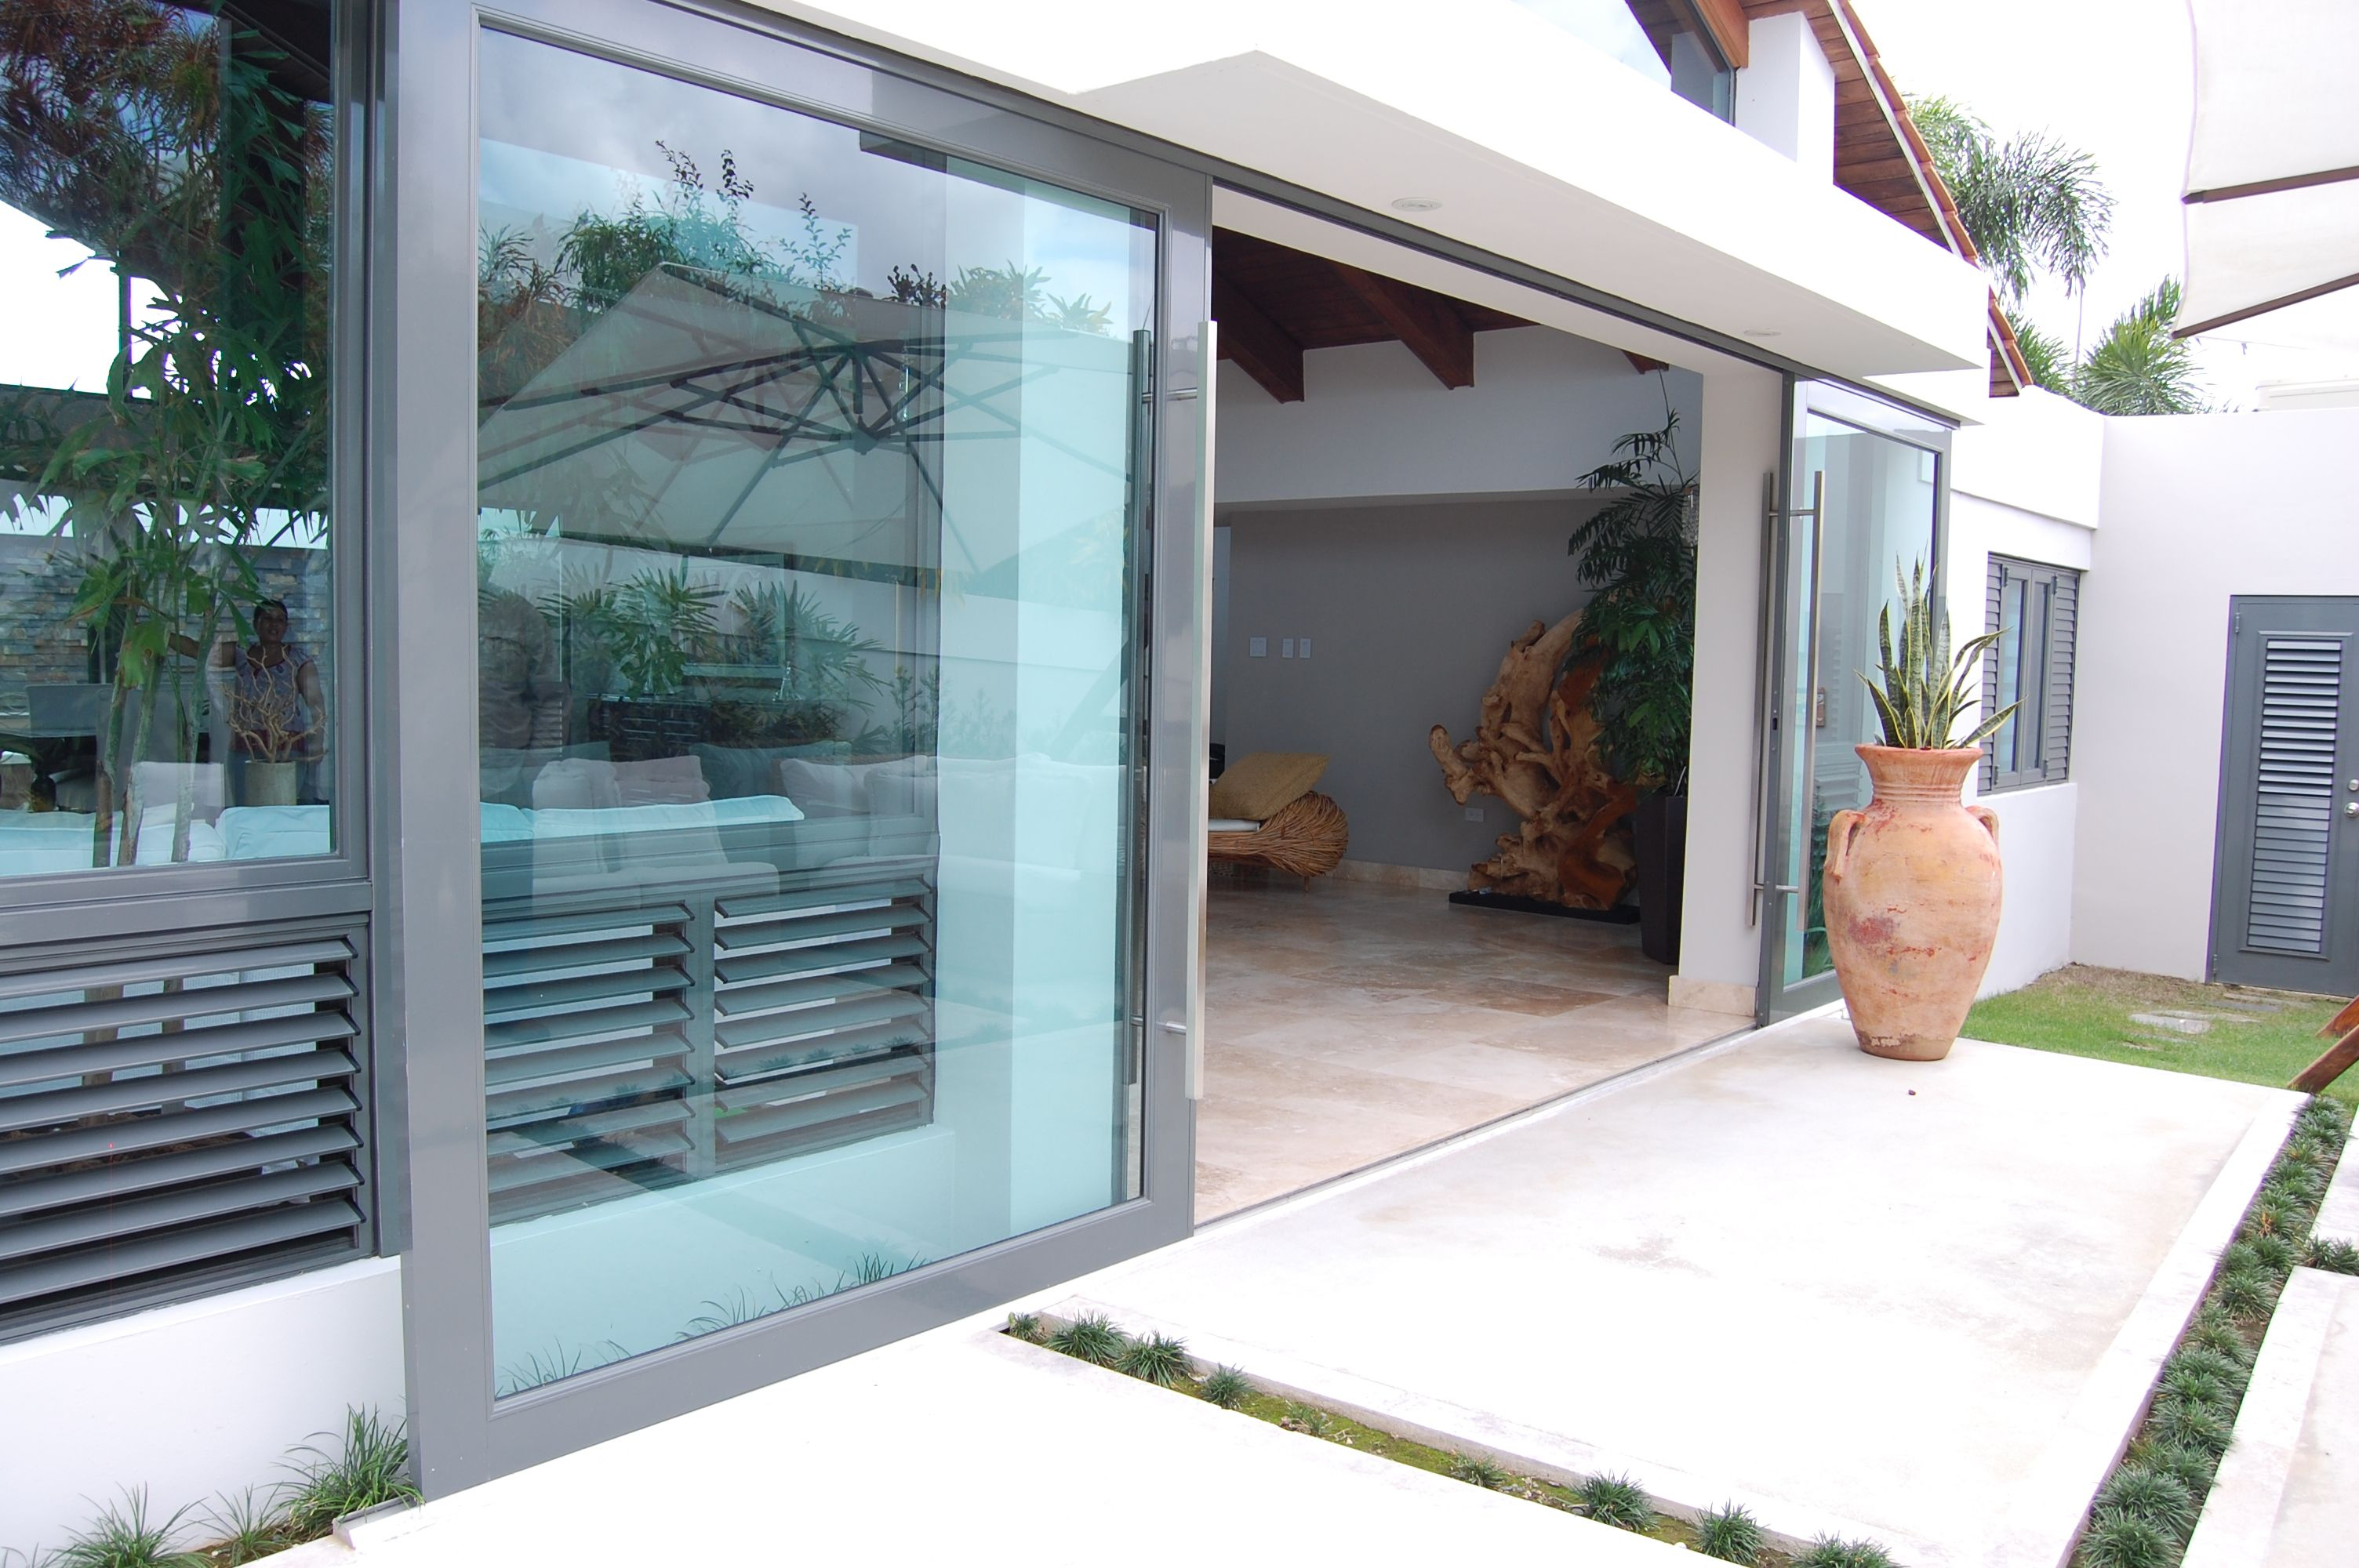 glass hc businesses sliding business linkclick door impact hurricane doors detail view link itemid window